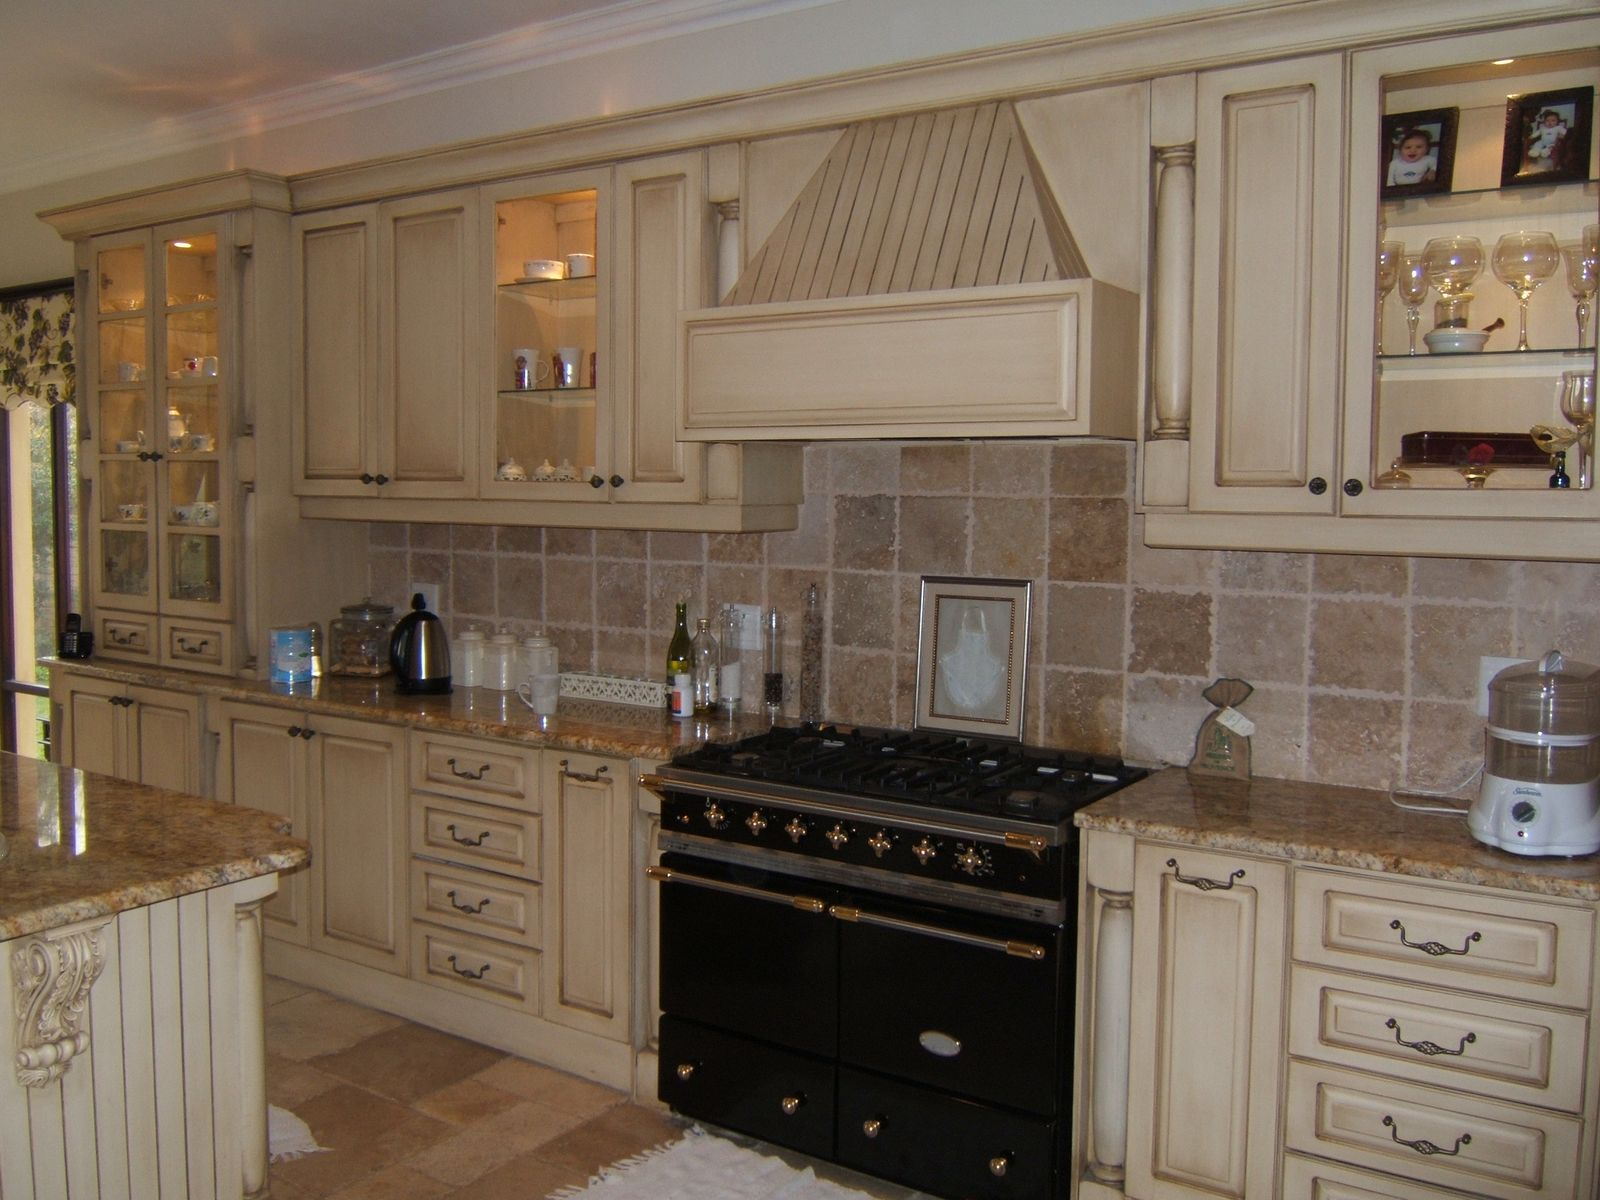 tile kitchen ideas ojeli solucan mutfak dekorasyonu 2763